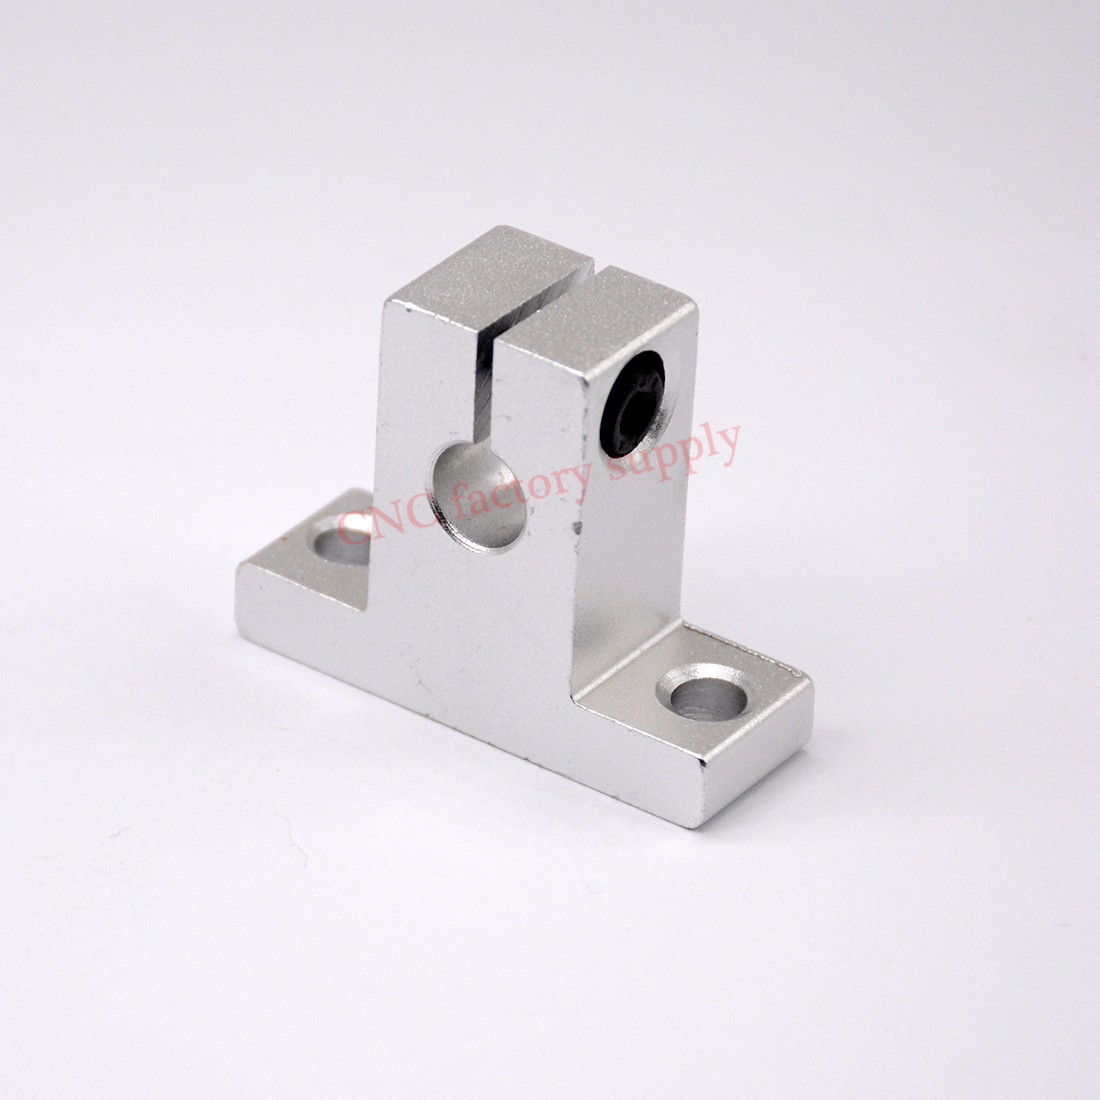 Hot sale 1pc SK10 10mm linear bearing rail shaft support XYZ Table CNC Router SH10A sk16 sh16a 16mm linear rail shaft support xyz table cnc 2pcs lot